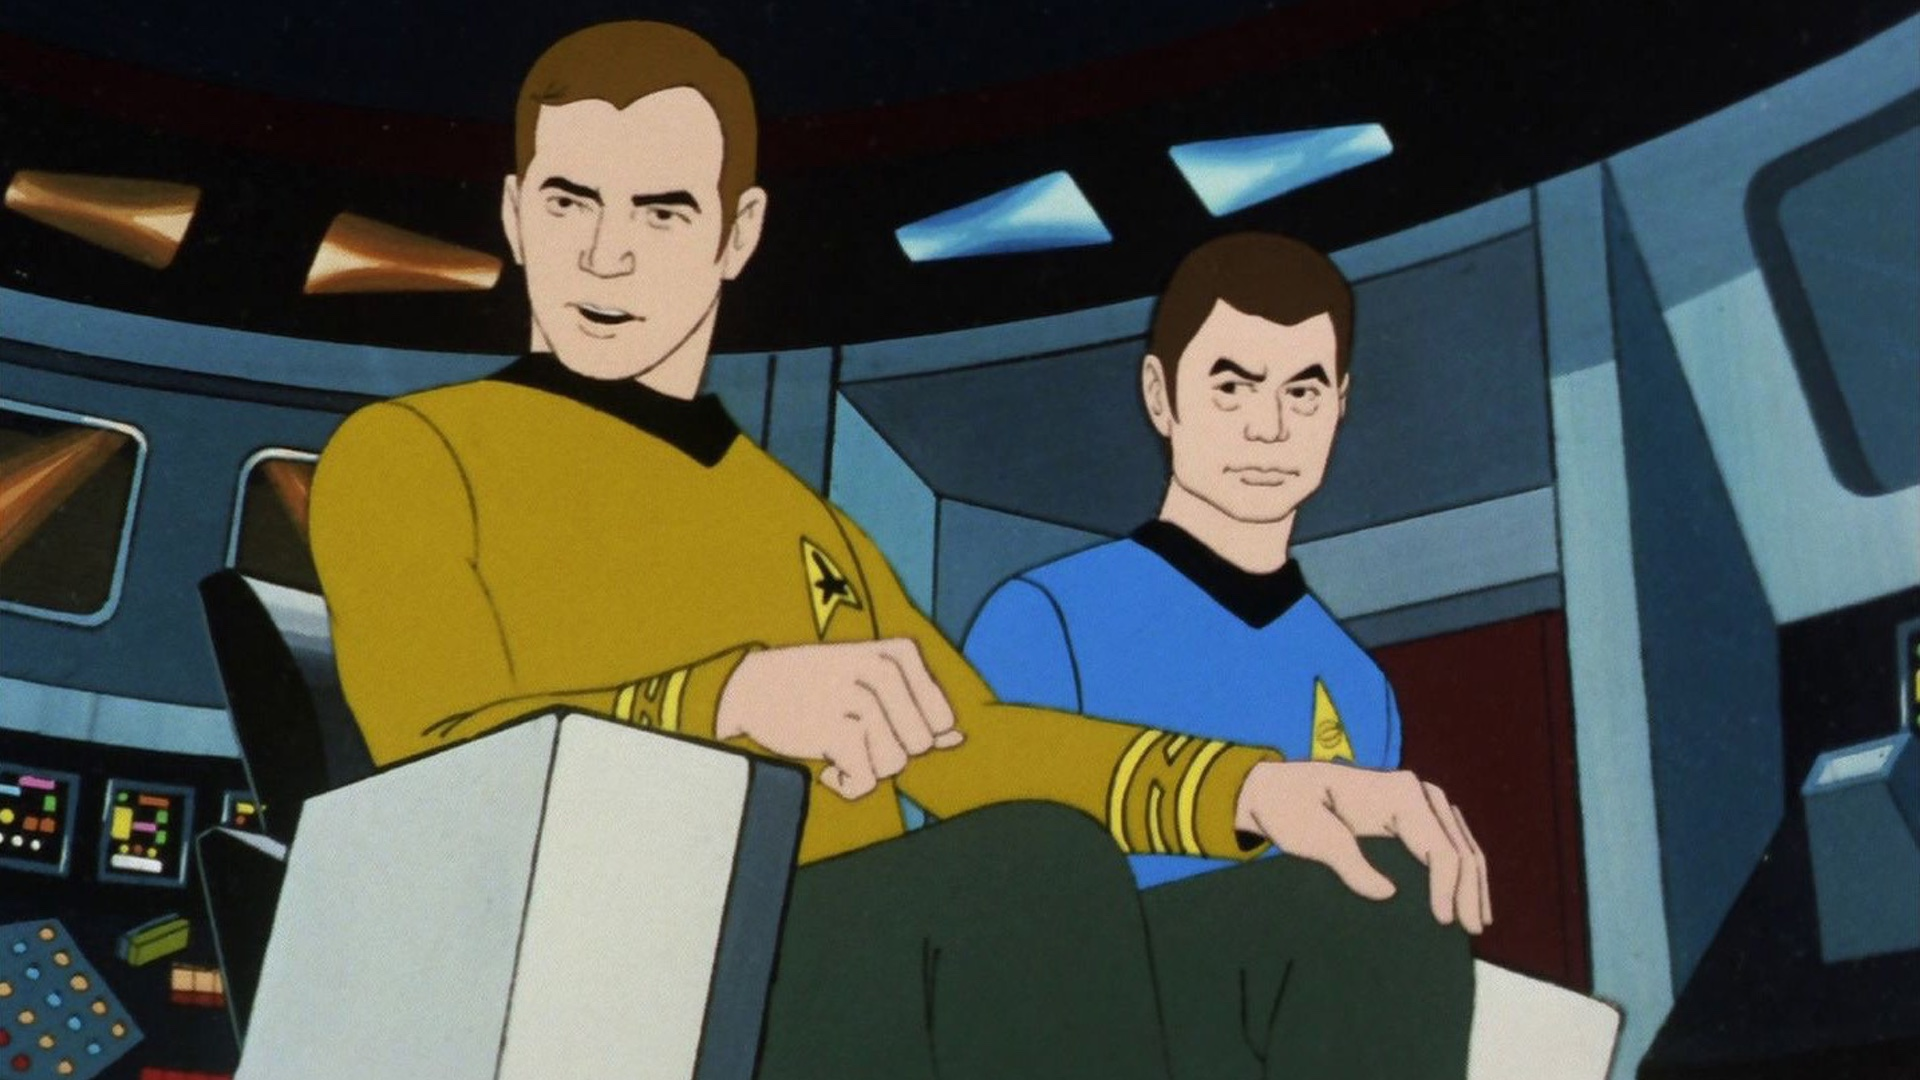 rick-and-morty-writer-mike-mcmahan-will-develop-the-star-trek-lower-decks-animated-series-social.jpg